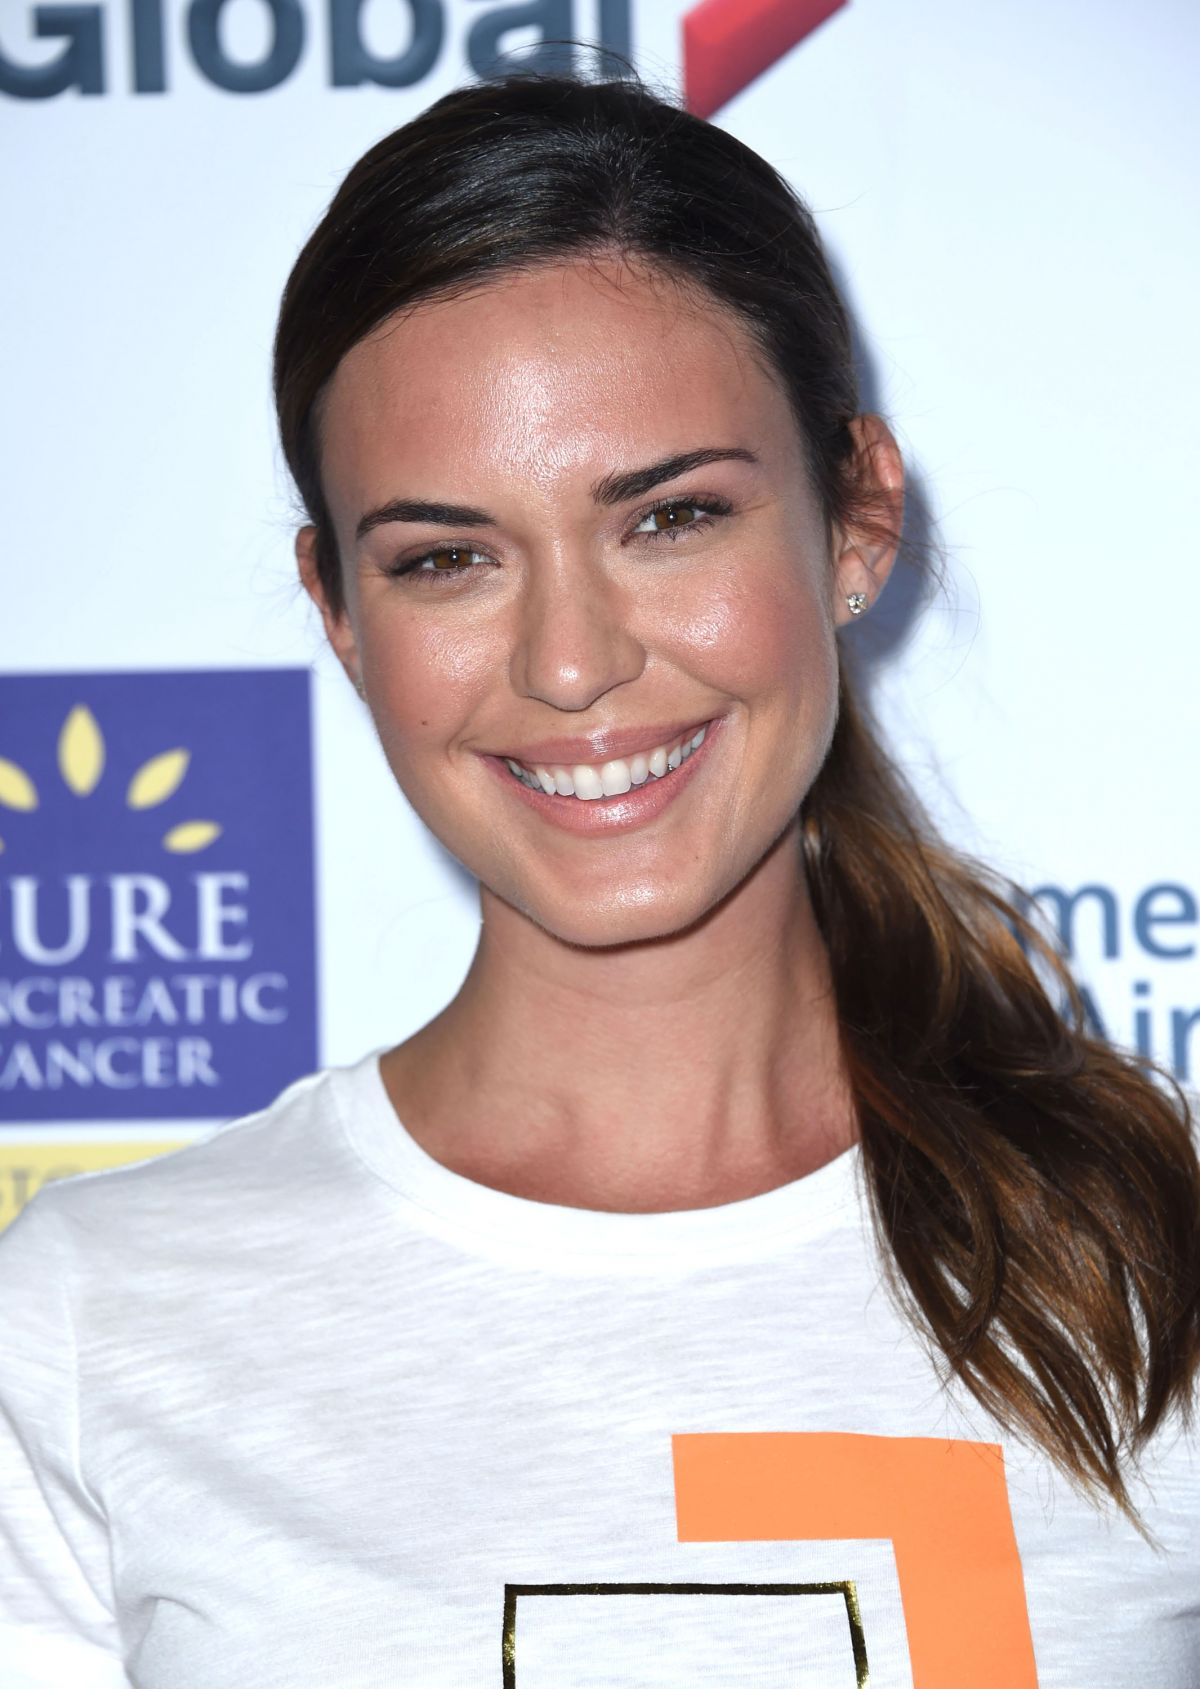 Odette Annable At 5th Biennial Stand Up To Cancer at Walt Disney Concert Hall in Los Angeles, CA   odette-annable-at-5th-biennial-stand-up-to-cancer-at-walt-disney-concert-hall-in-los-angeles-ca_4